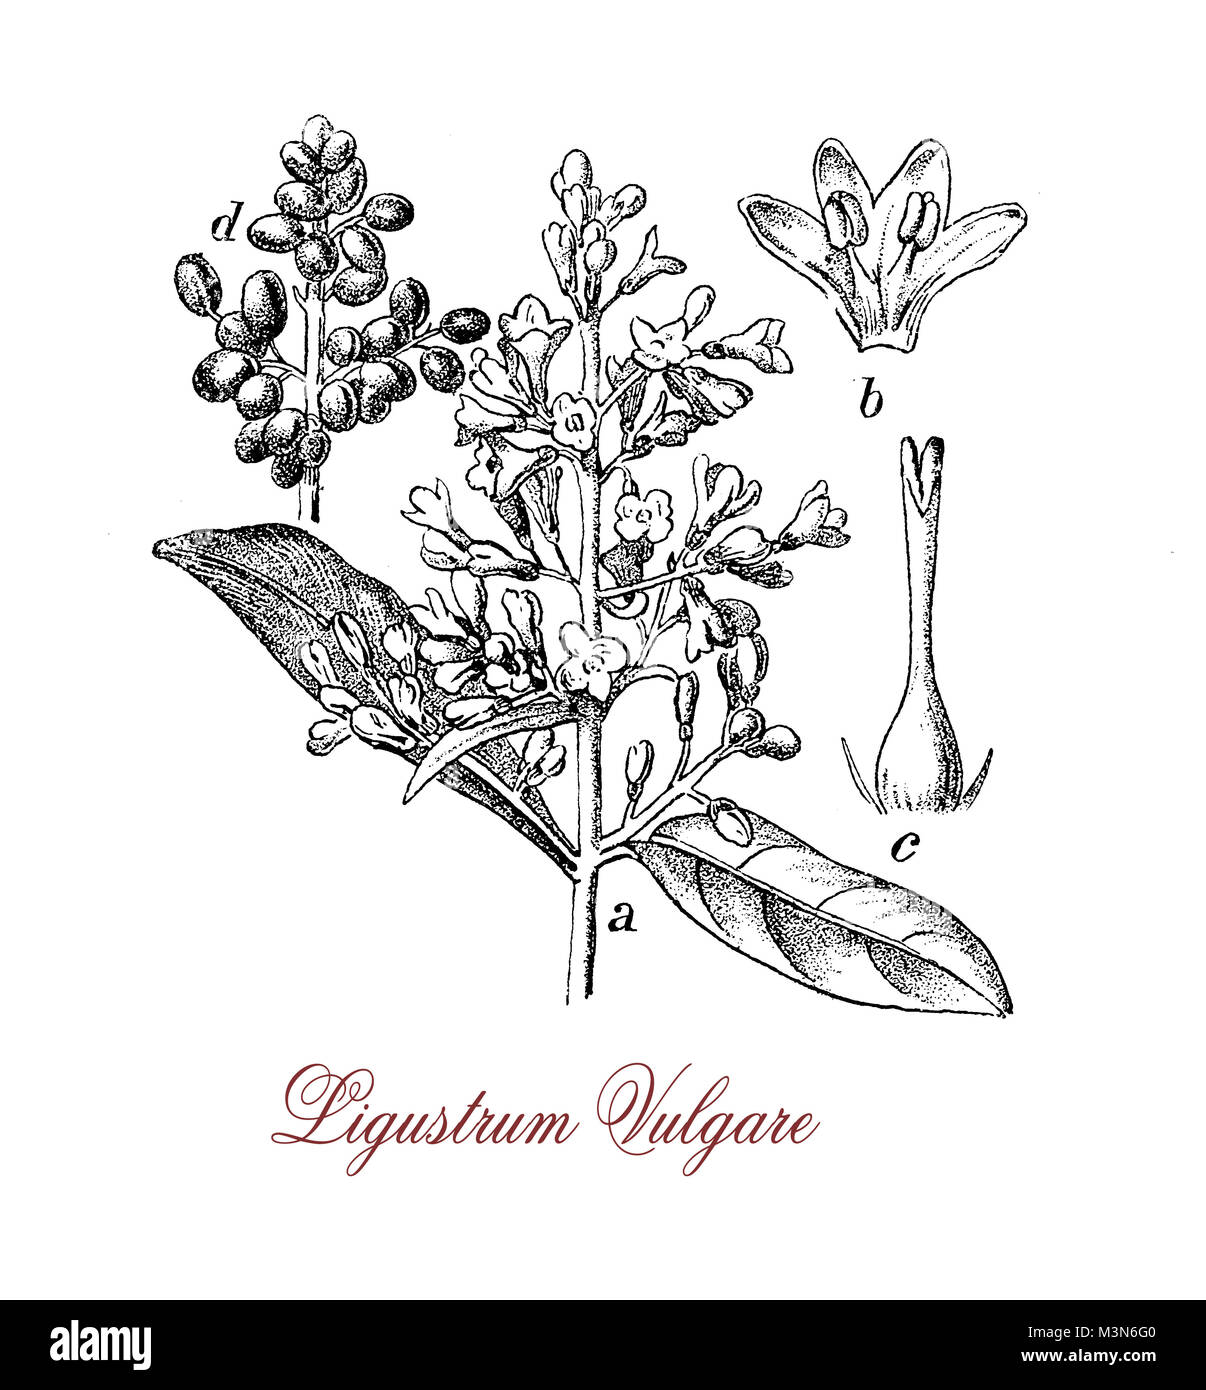 vintage engraving of ligustrum vulgare or wild privet, shrub with white creamy flowers and poisonous black berries, - Stock Image